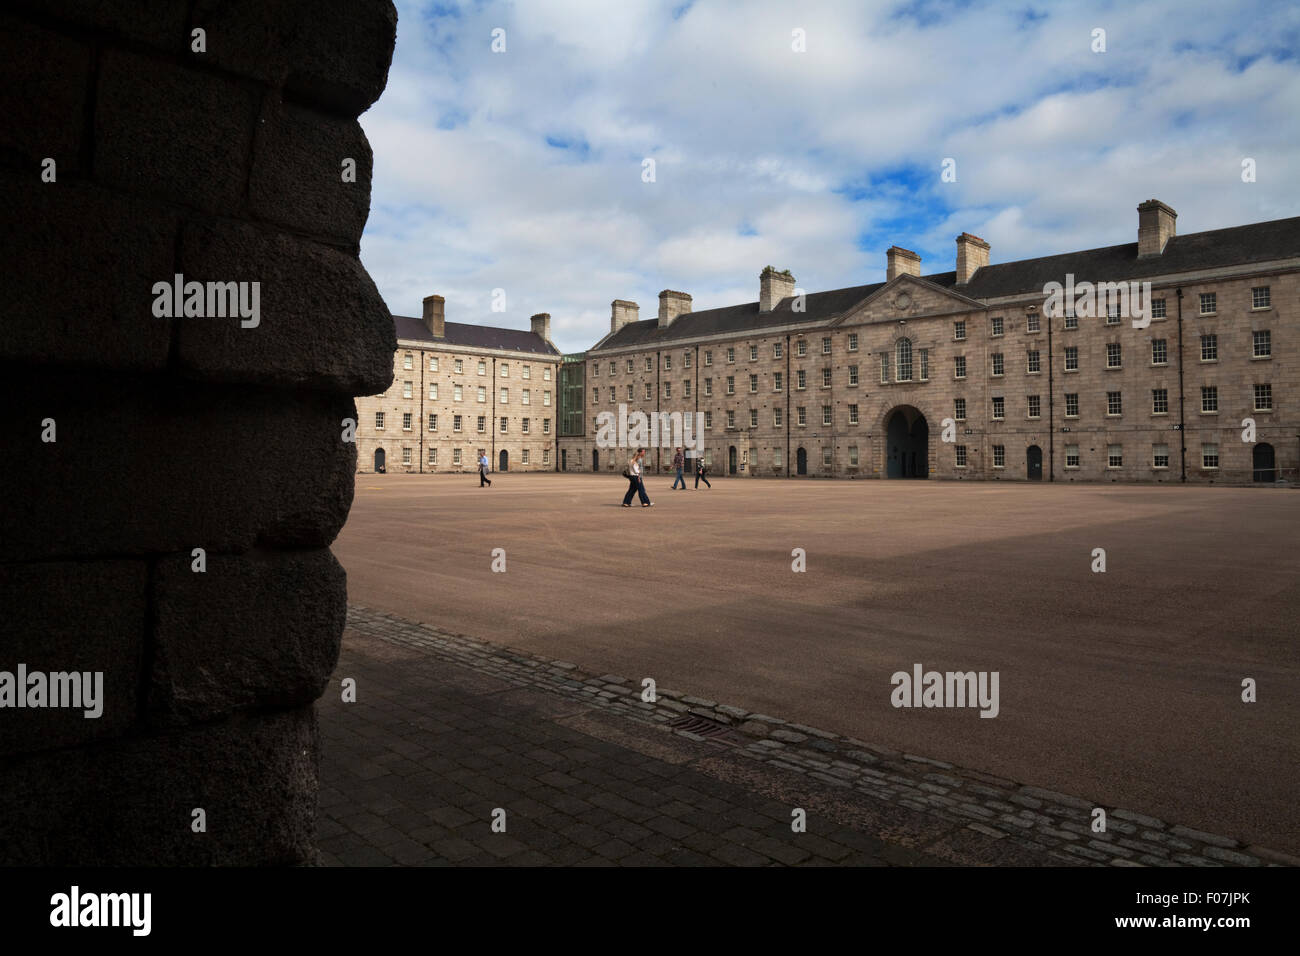 The National Museum of Ireland,  the Main Square, The Collins Barracks,  a former British (and later) Irish military - Stock Image